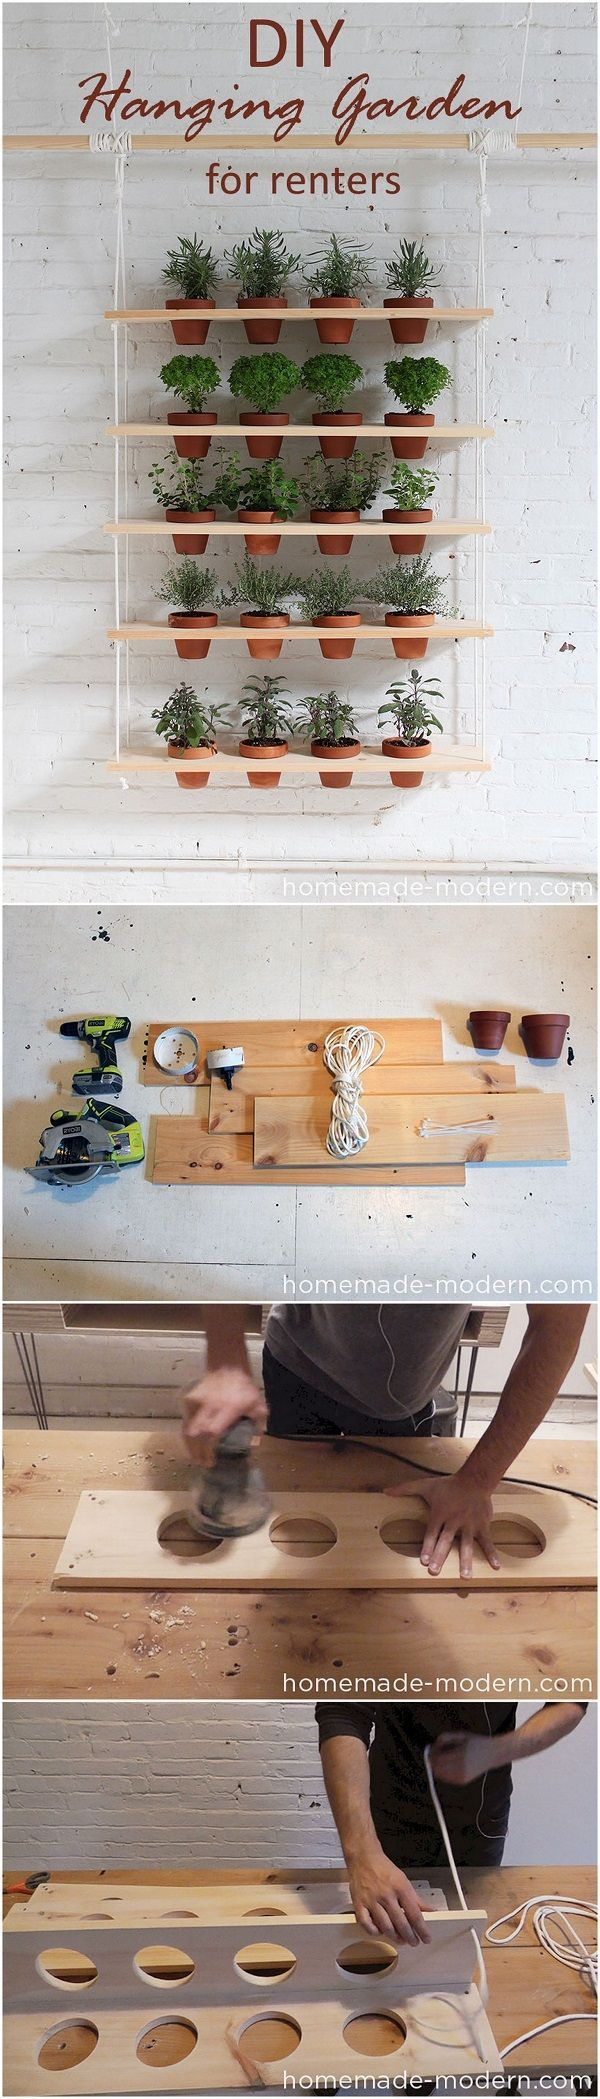 Check out this easy idea on how to make a #DIY hanging garden for #renters #homedecor #project DIY Home Decor Ideas @ ISD #DIYHomeDecorCraftsOnABudget